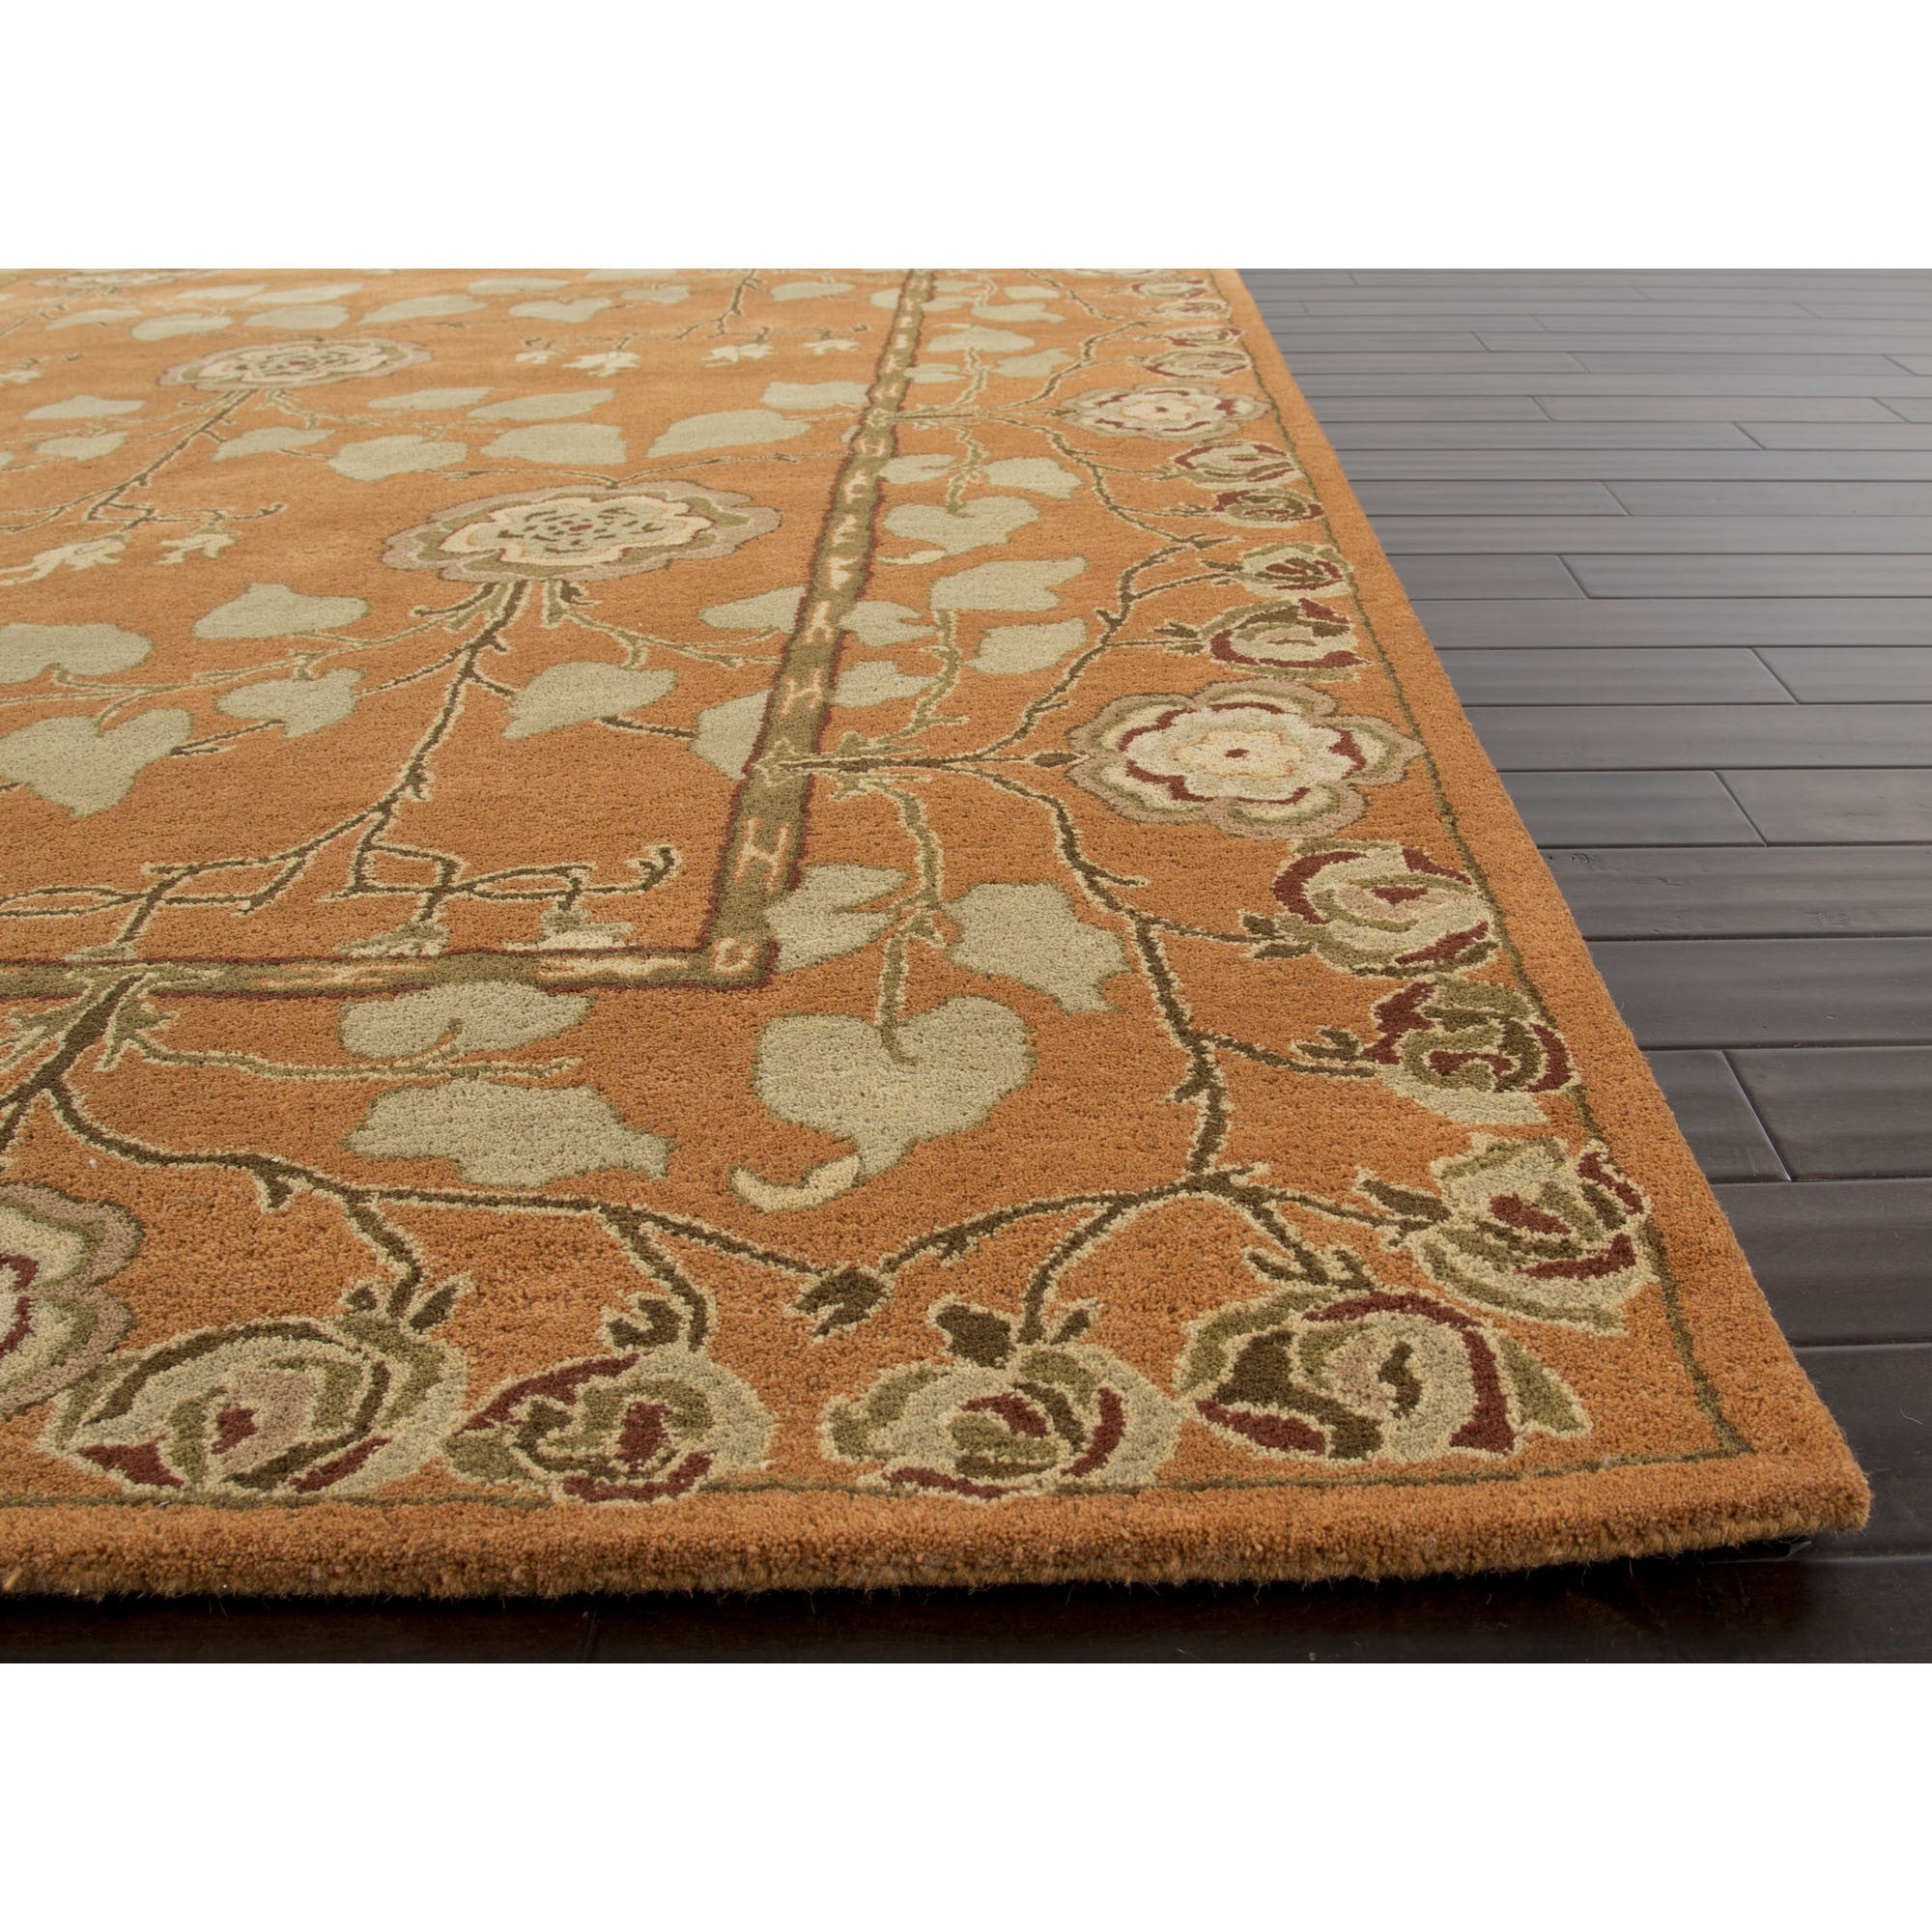 zm rust gold un rugs orange rug underwood area loloi product